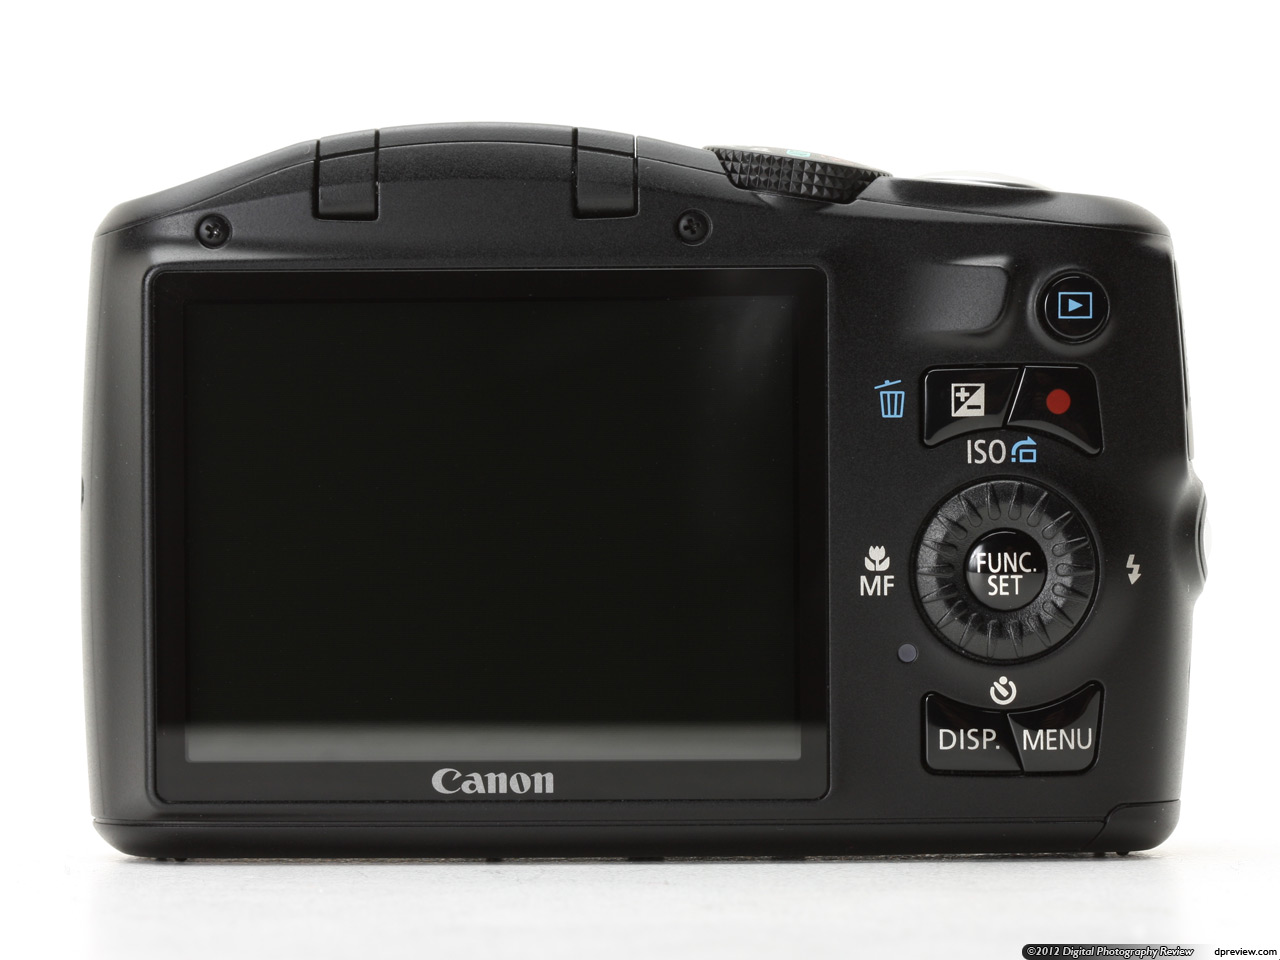 canon powershot sx150 is owners manual browse manual guides u2022 rh trufflefries co canon powershot sx150 is manual portugues canon powershot sx150 user manual pdf